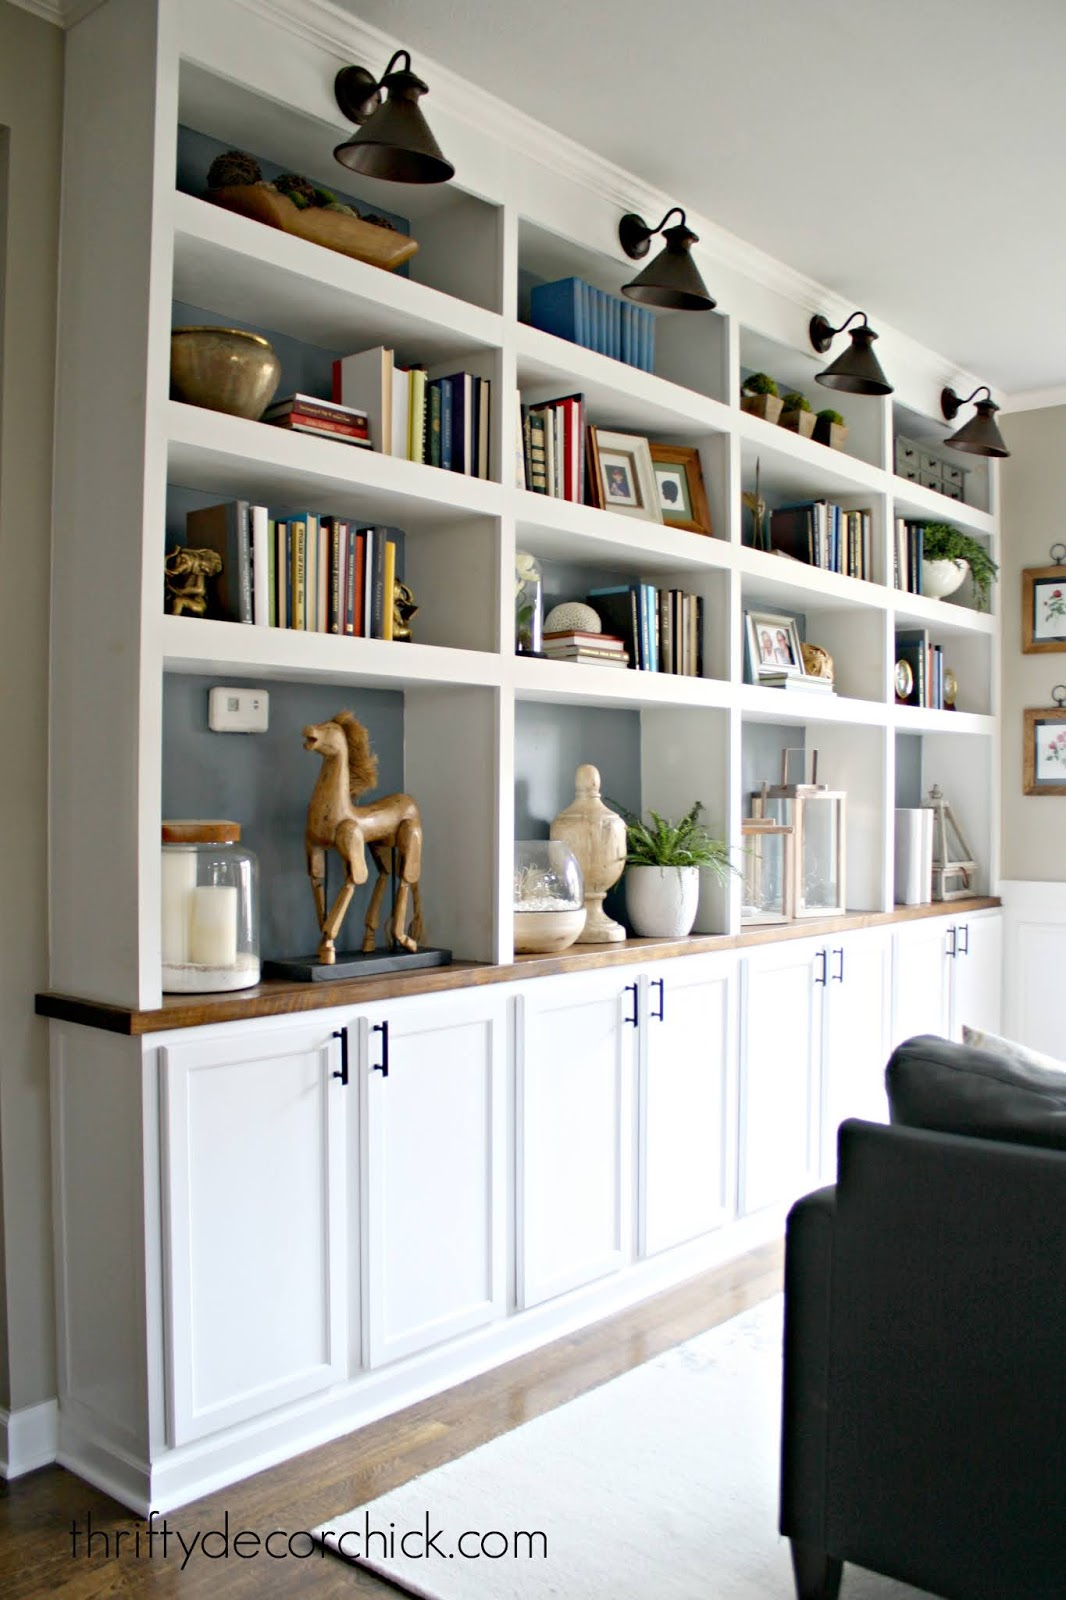 huge wall of DIY bookshelves with kitchen cabinets